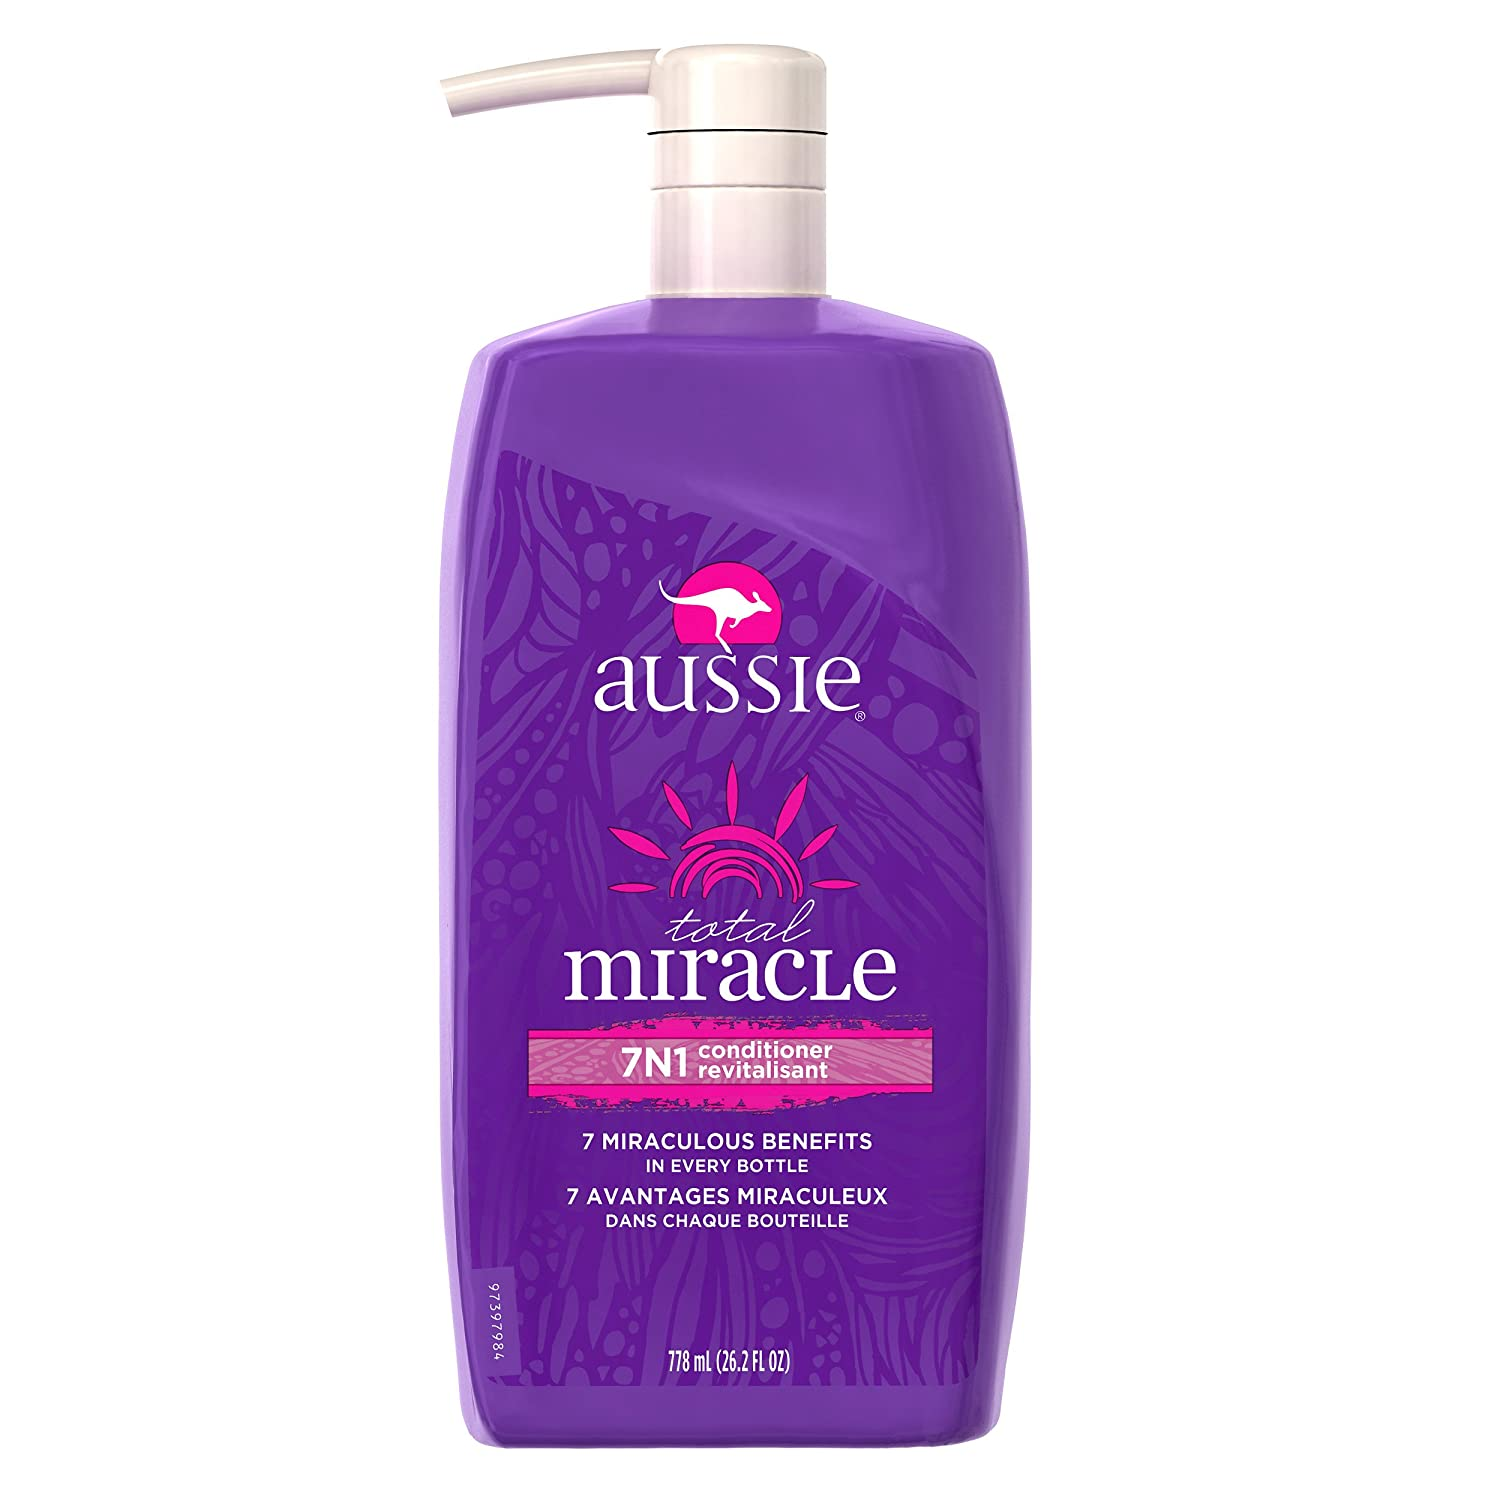 For Damage – Aussie Paraben-Free Total Miracle Shampoo w/Apricot & Macadamia, 778 mL (Packaging may vary) Total miracle 7n1